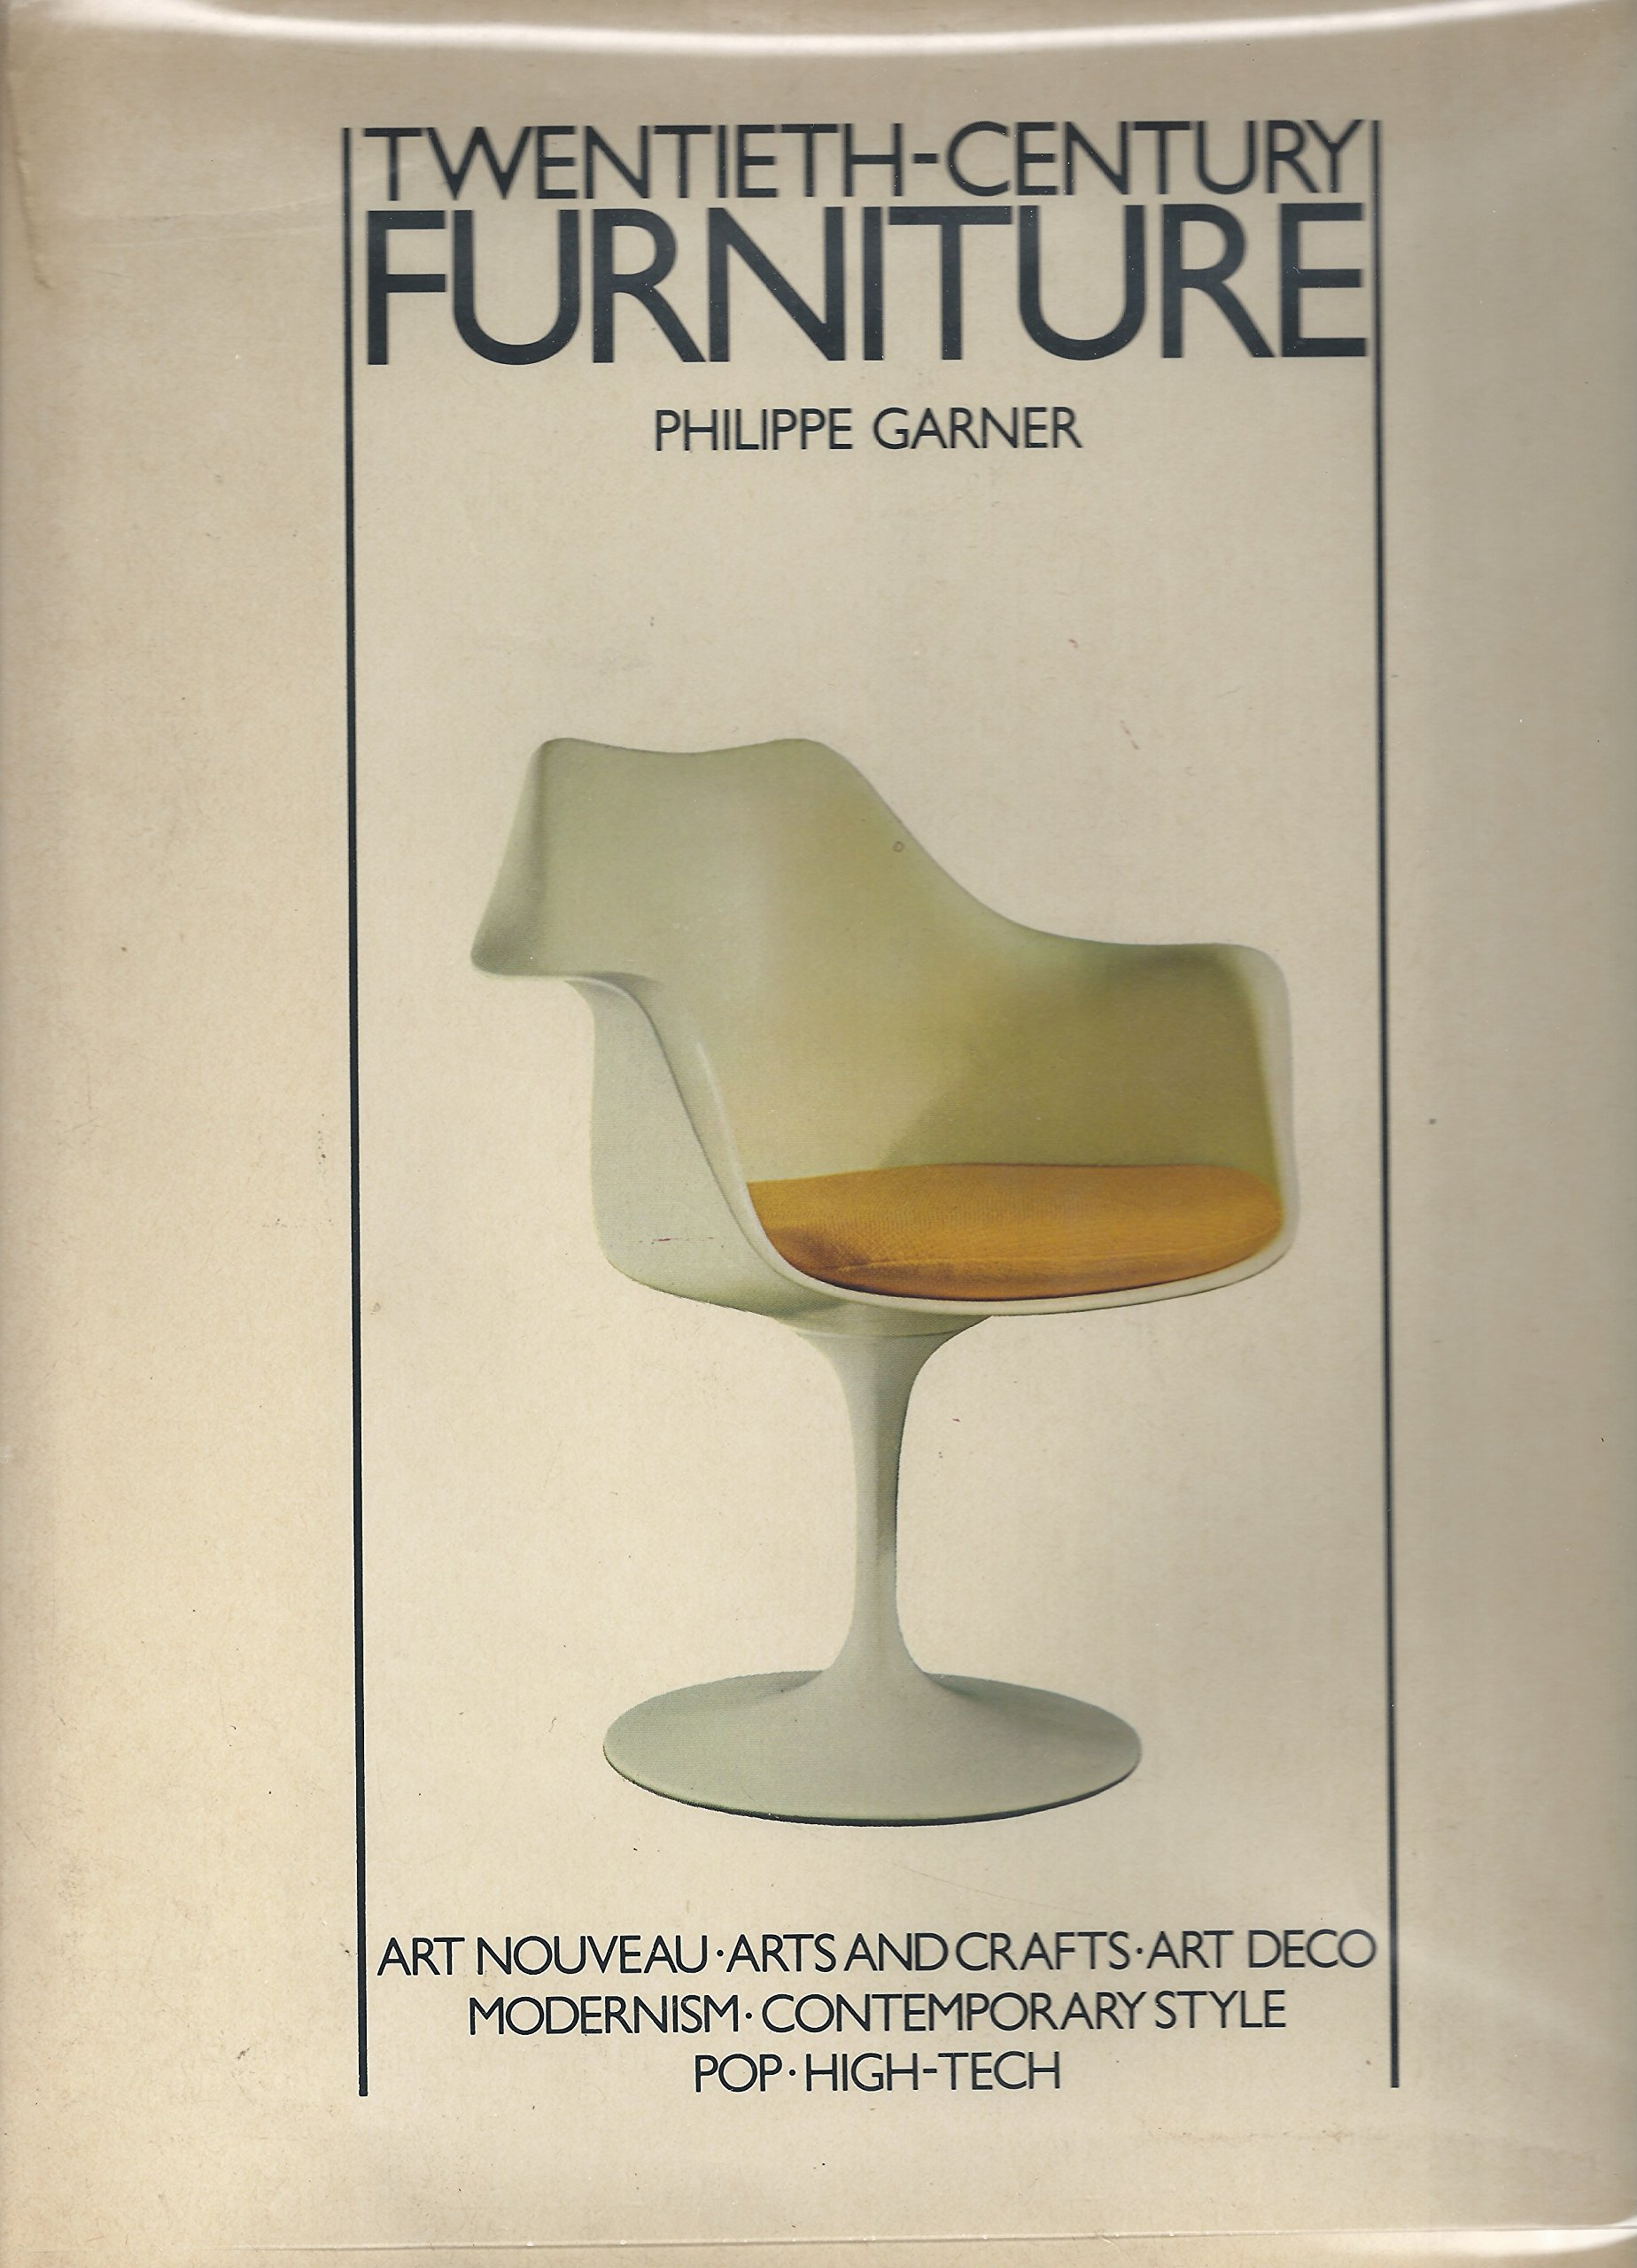 Twentieth Century Furniture: Philippe Garner: 9780442254216: Amazon.com:  Books